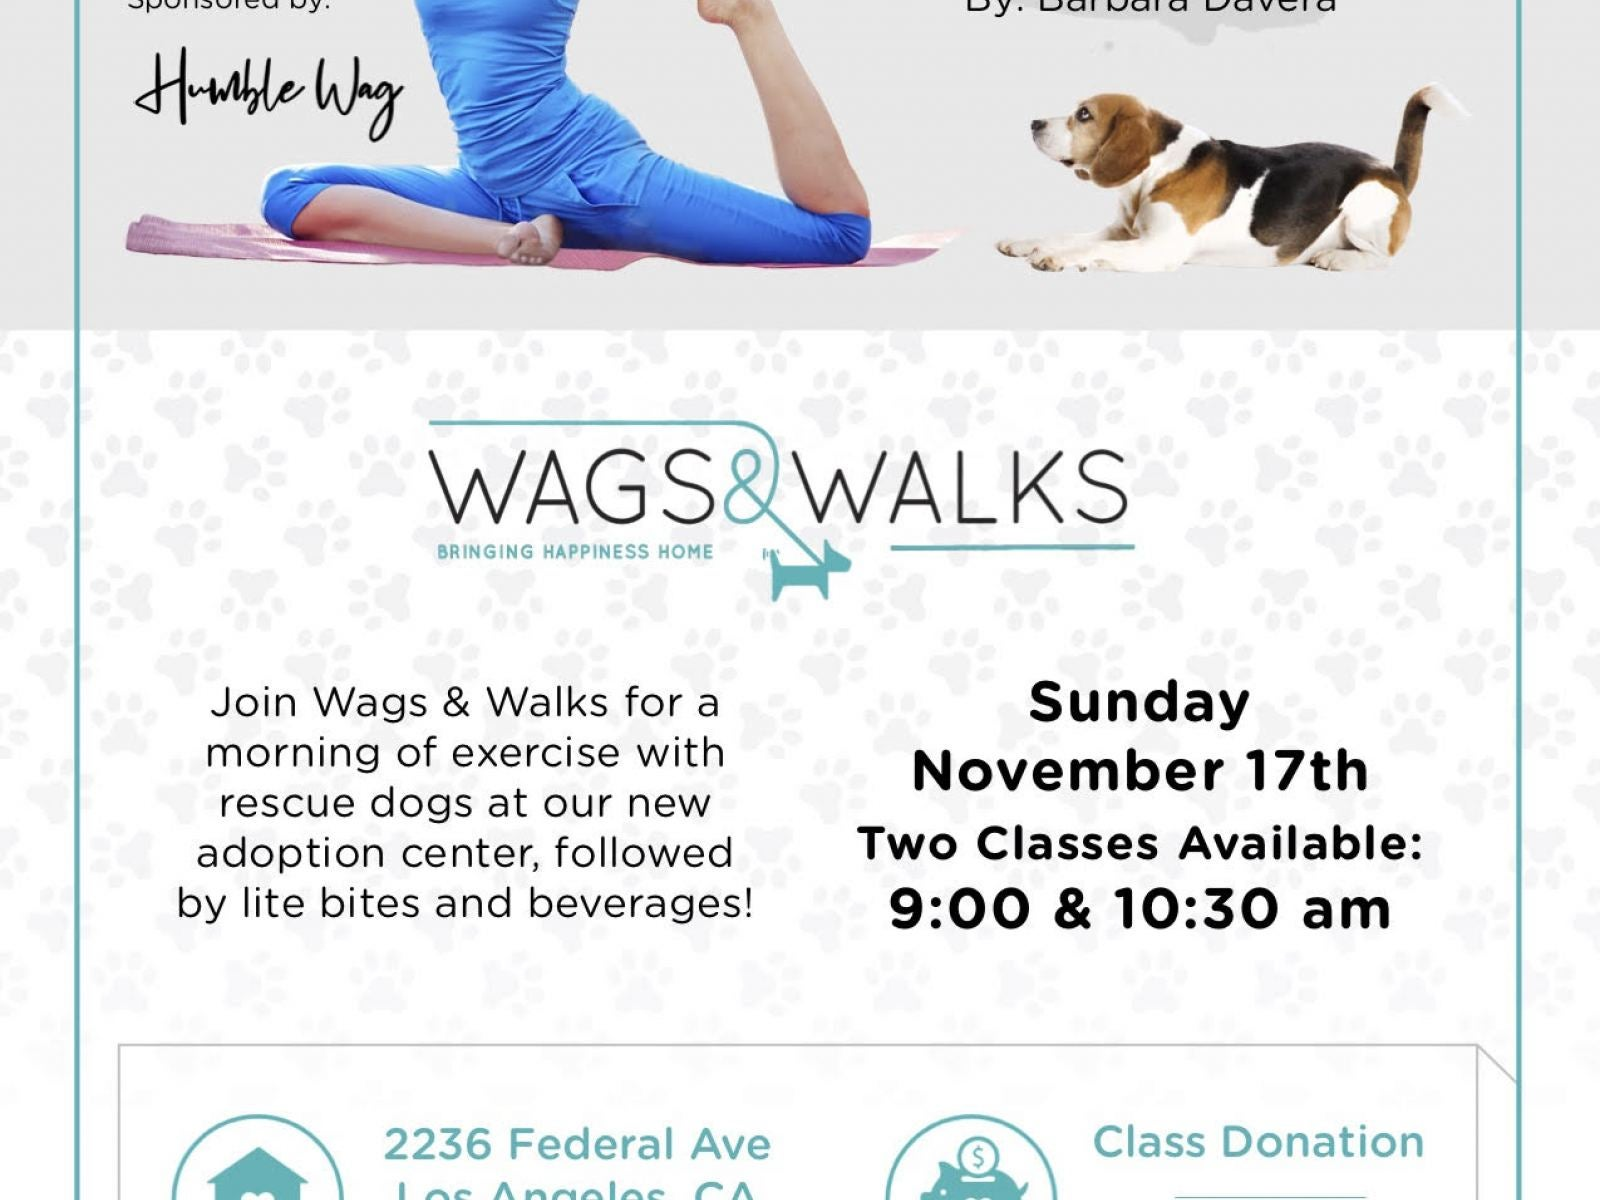 Event site: https://yogatotherescue.funraise.org